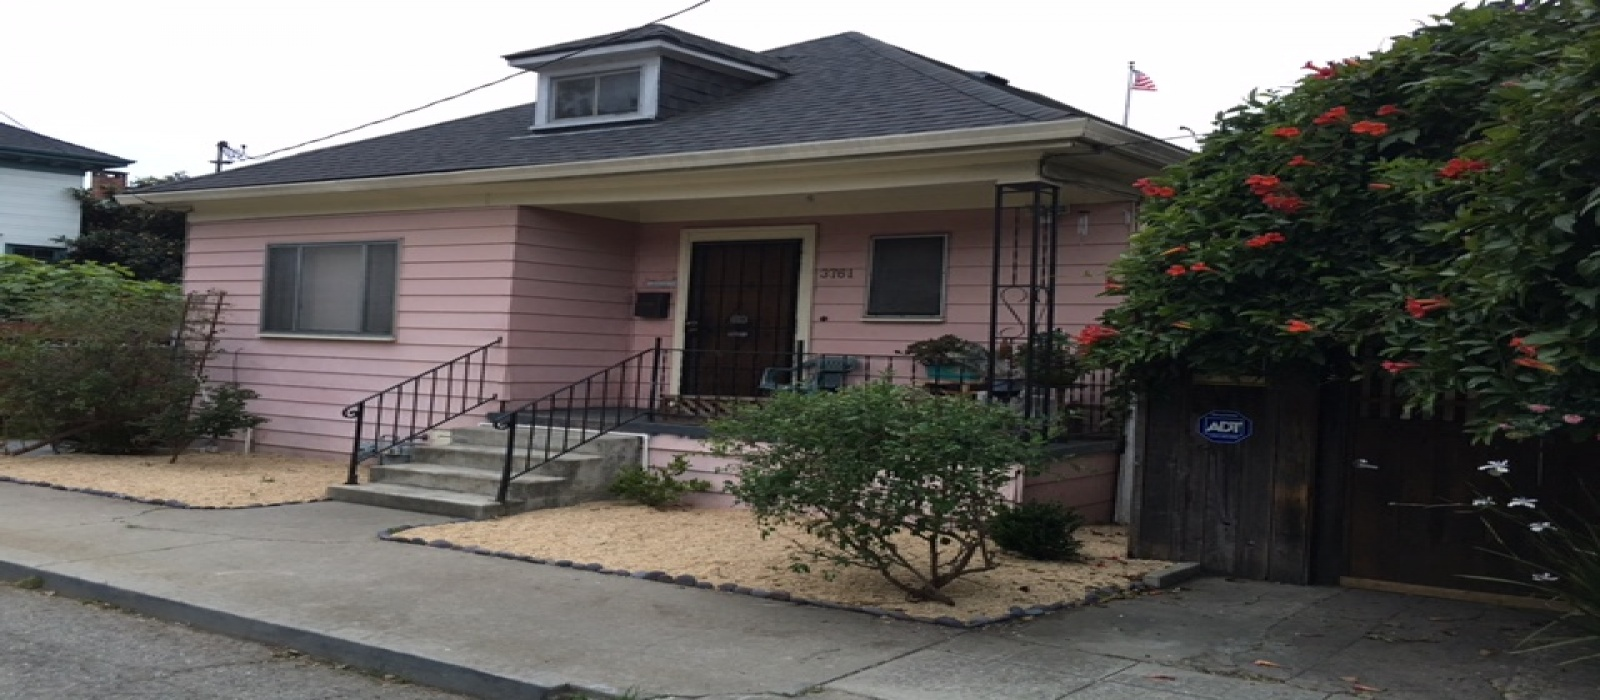 3761 Latimer Pl,Oakland,California 94609,2 Bedrooms Bedrooms,1 BathroomBathrooms,Single Family,Latimer,1021